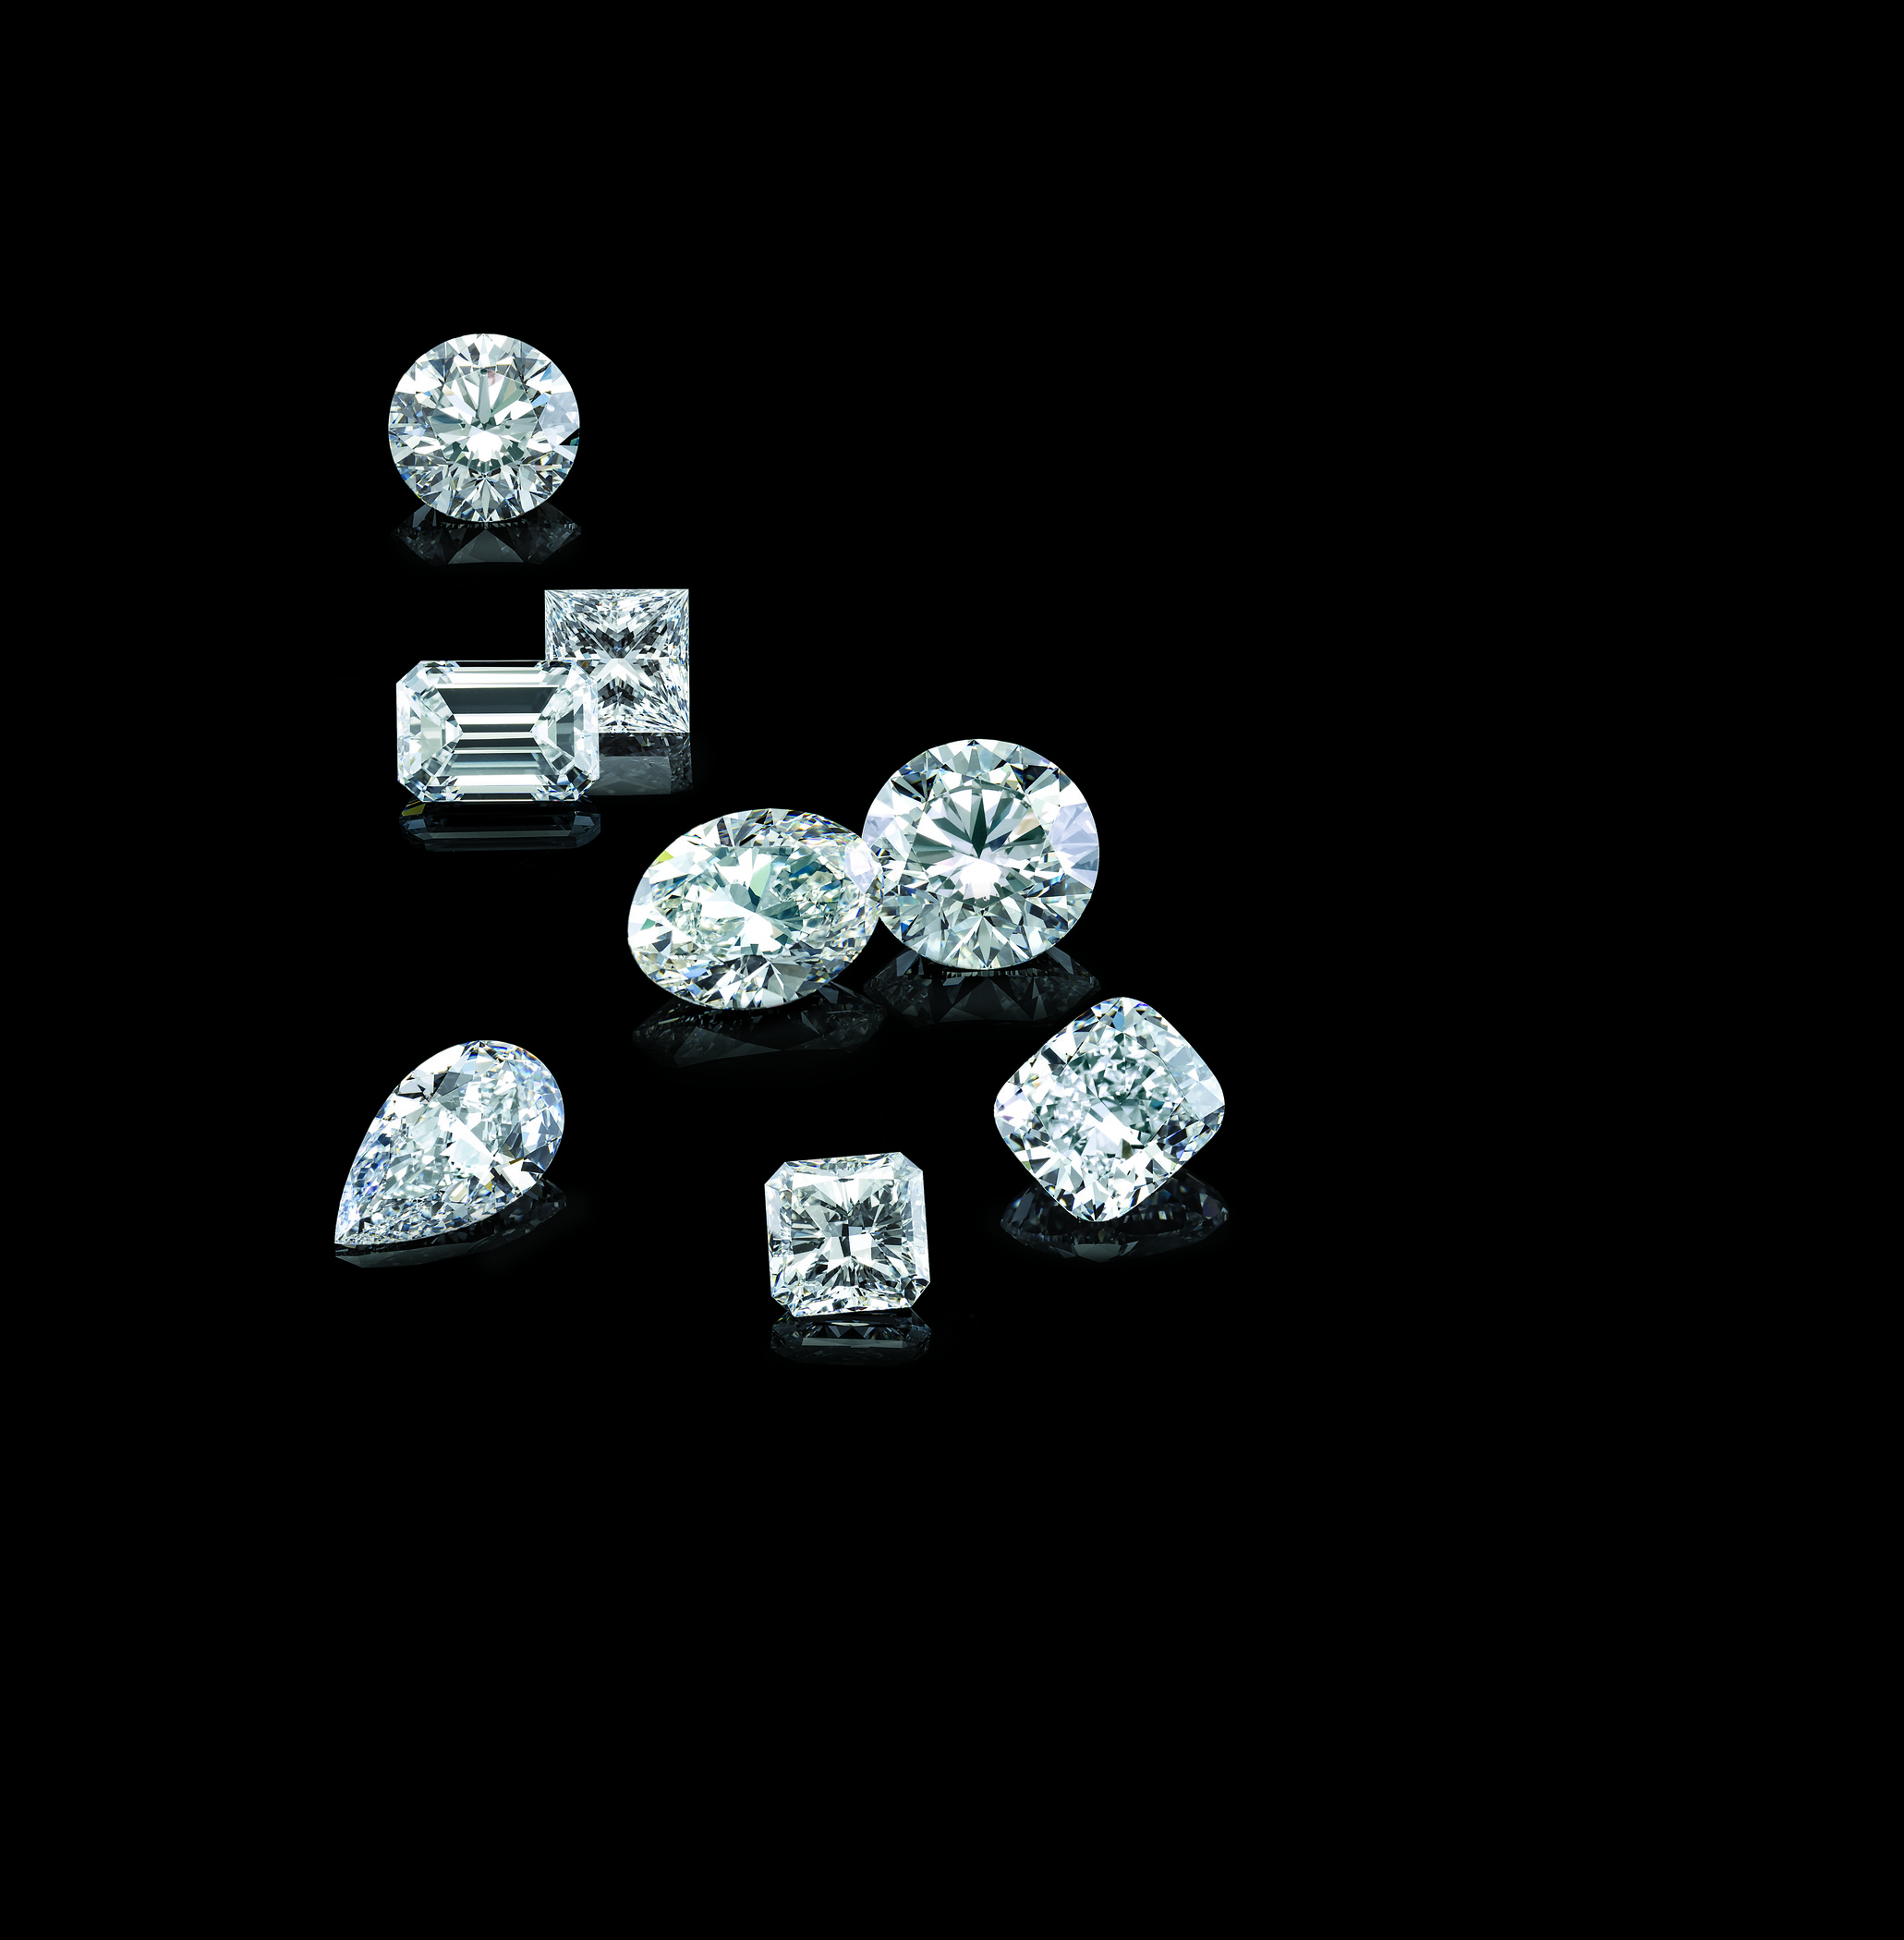 Browse Red Box Diamonds - Hand-selected and individually graded diamonds.